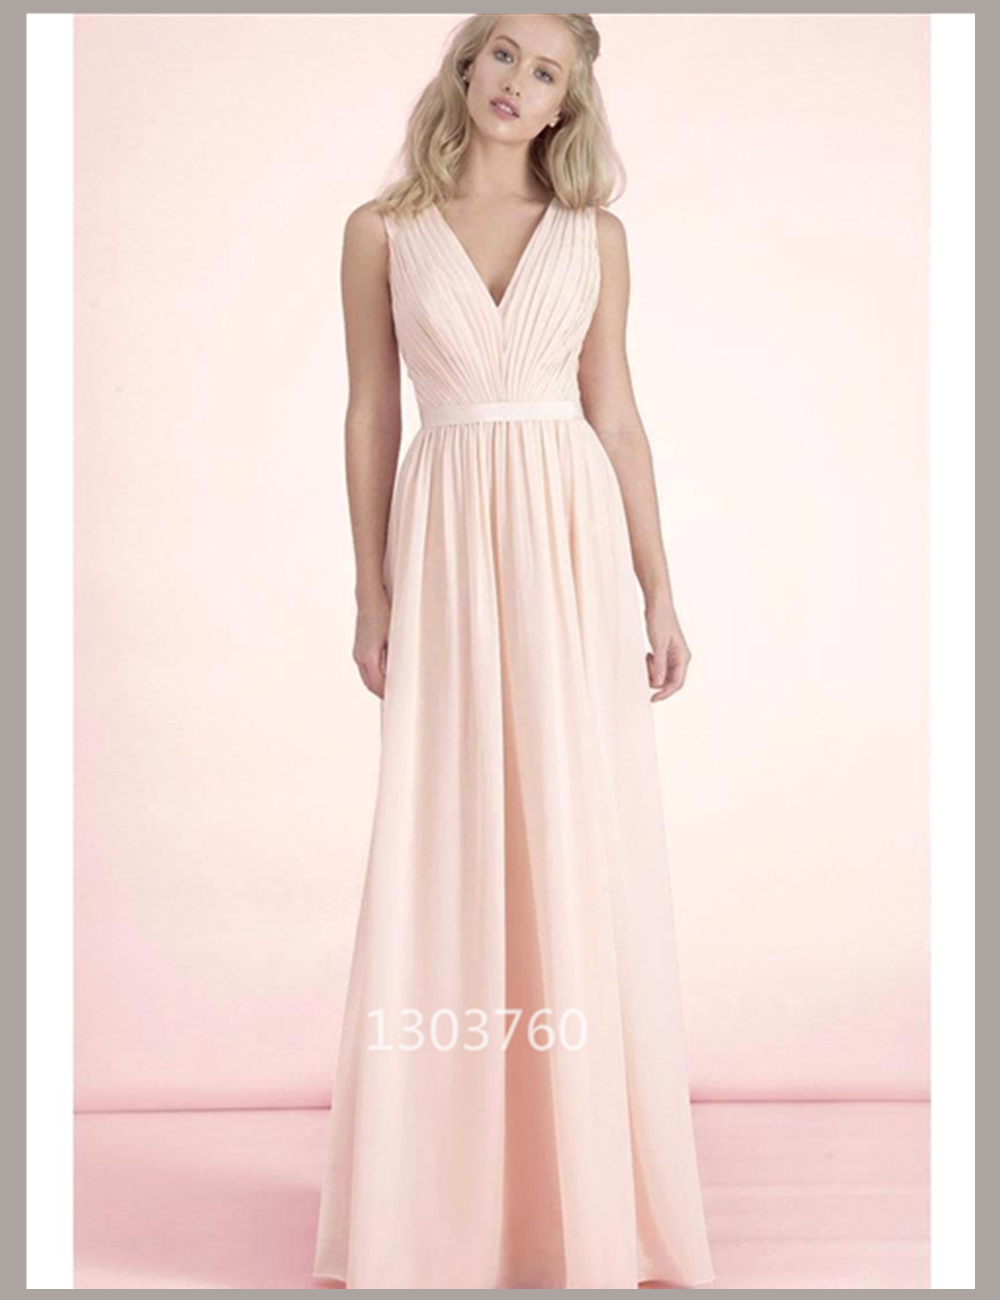 Online buy wholesale t length bridesmaid dresses from china t cheap chiffon redblack long bridesmaid dresses 2016 v neck floor length wedding party dresses ombrellifo Images